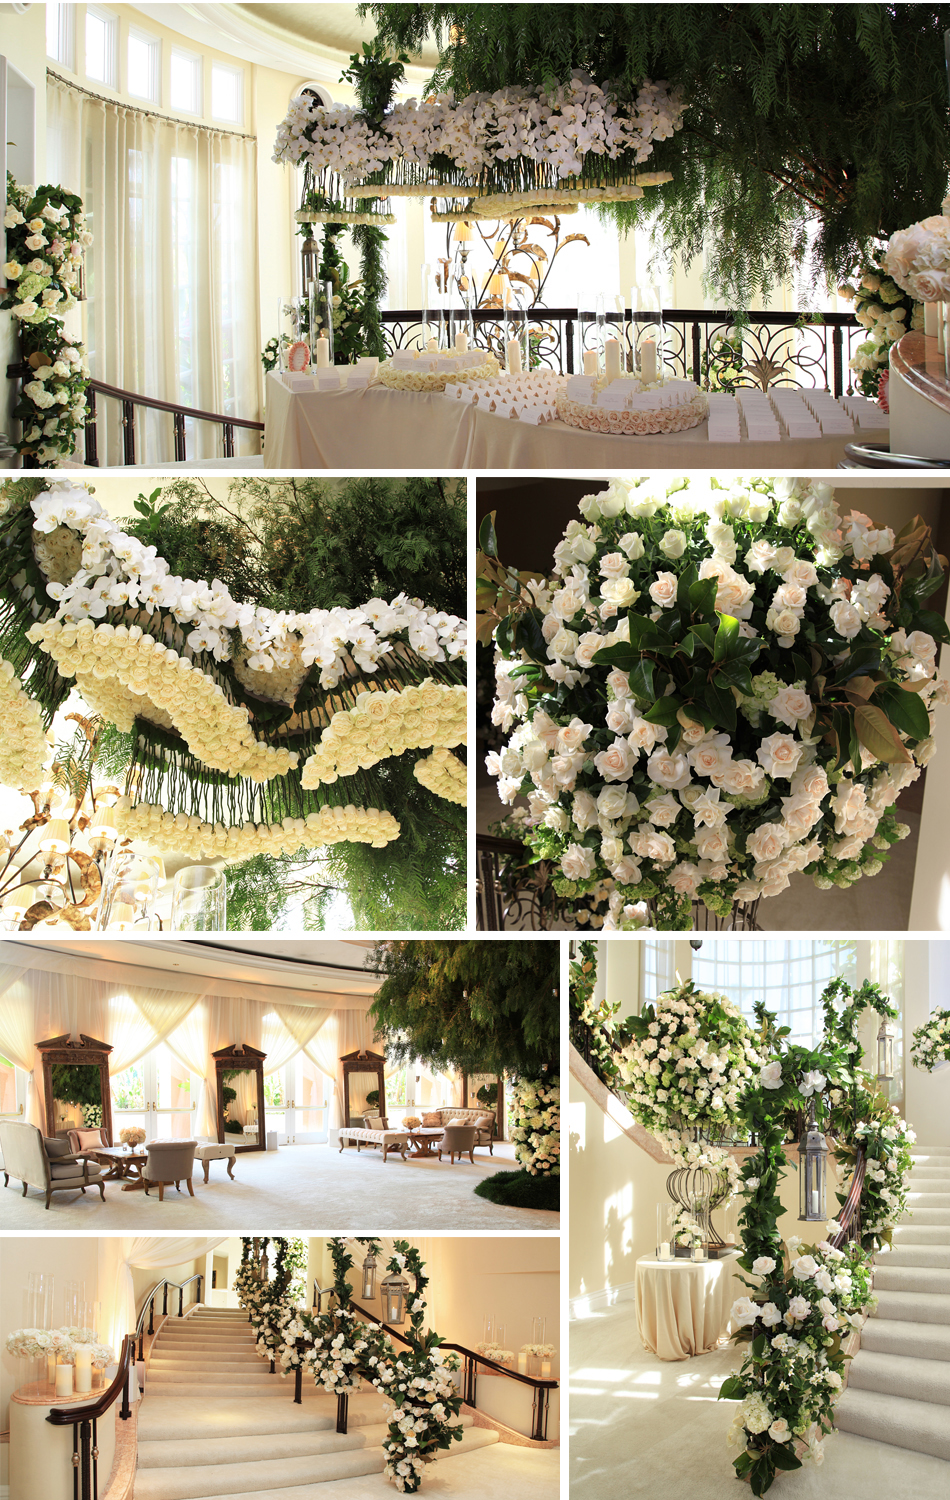 internationaleventcompany.com | International Event Company Los Angeles Wedding Planner and Designer | Weddings at The Beverly Hills Hotel | Luxury Event Planners in Southern California _.jpg